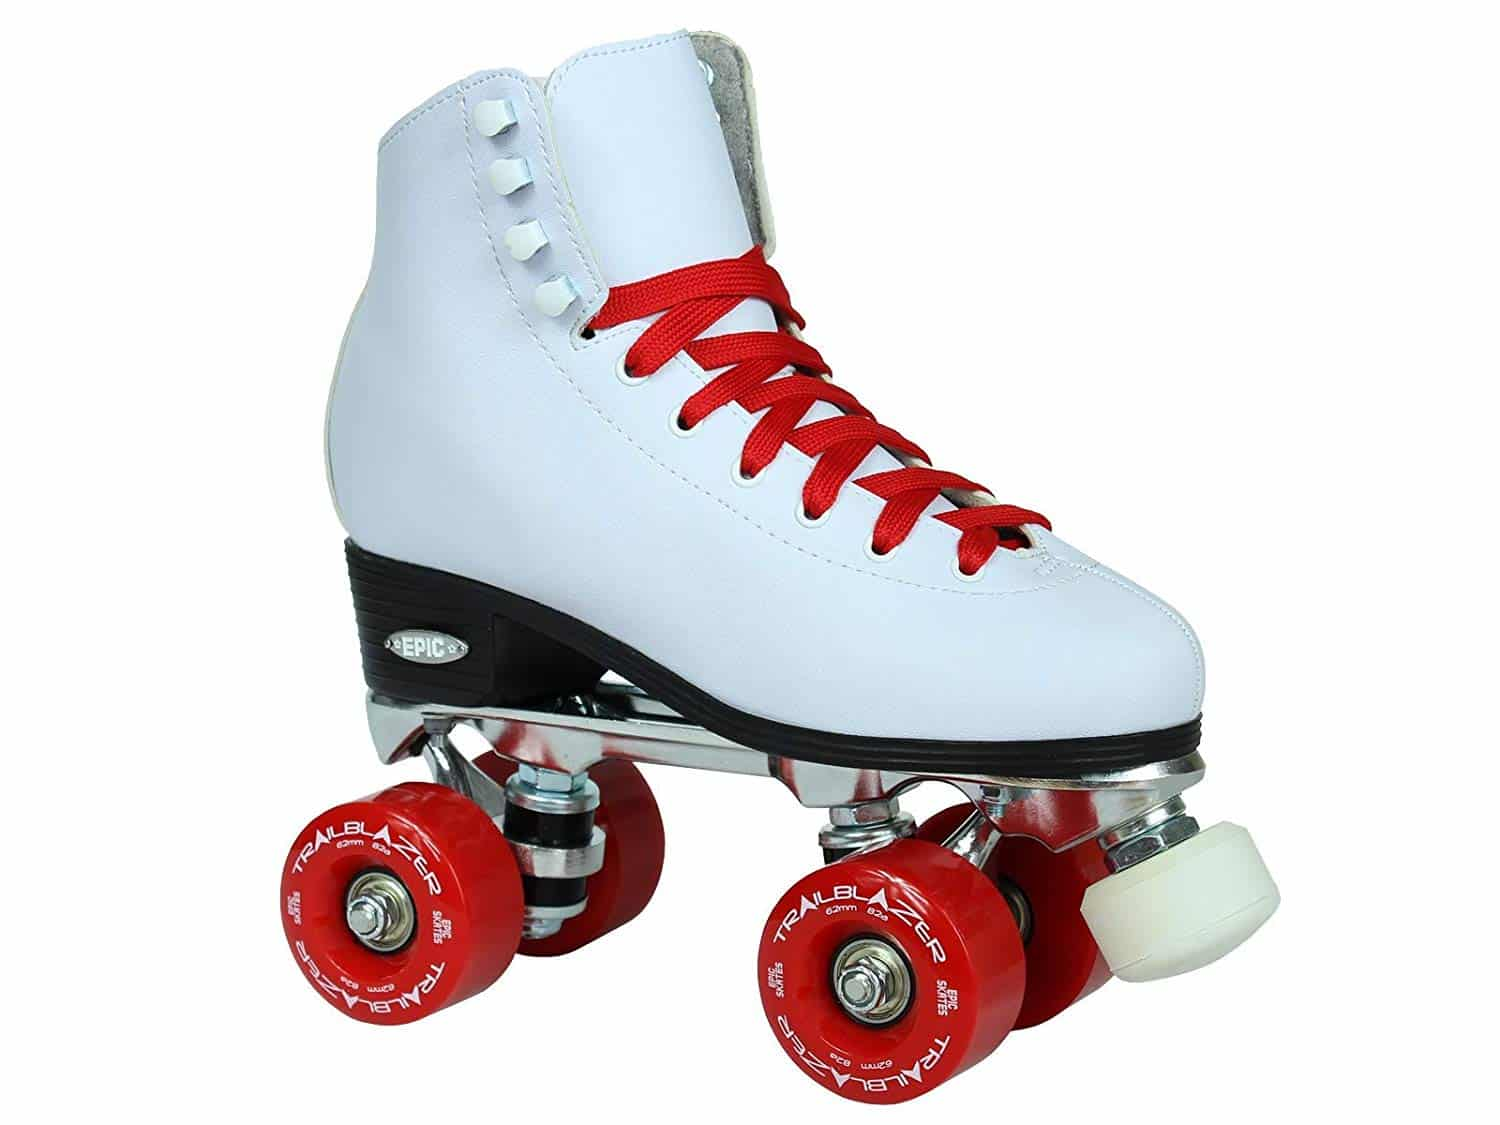 Epic Skates Classic High-Top Quad Roller Skates